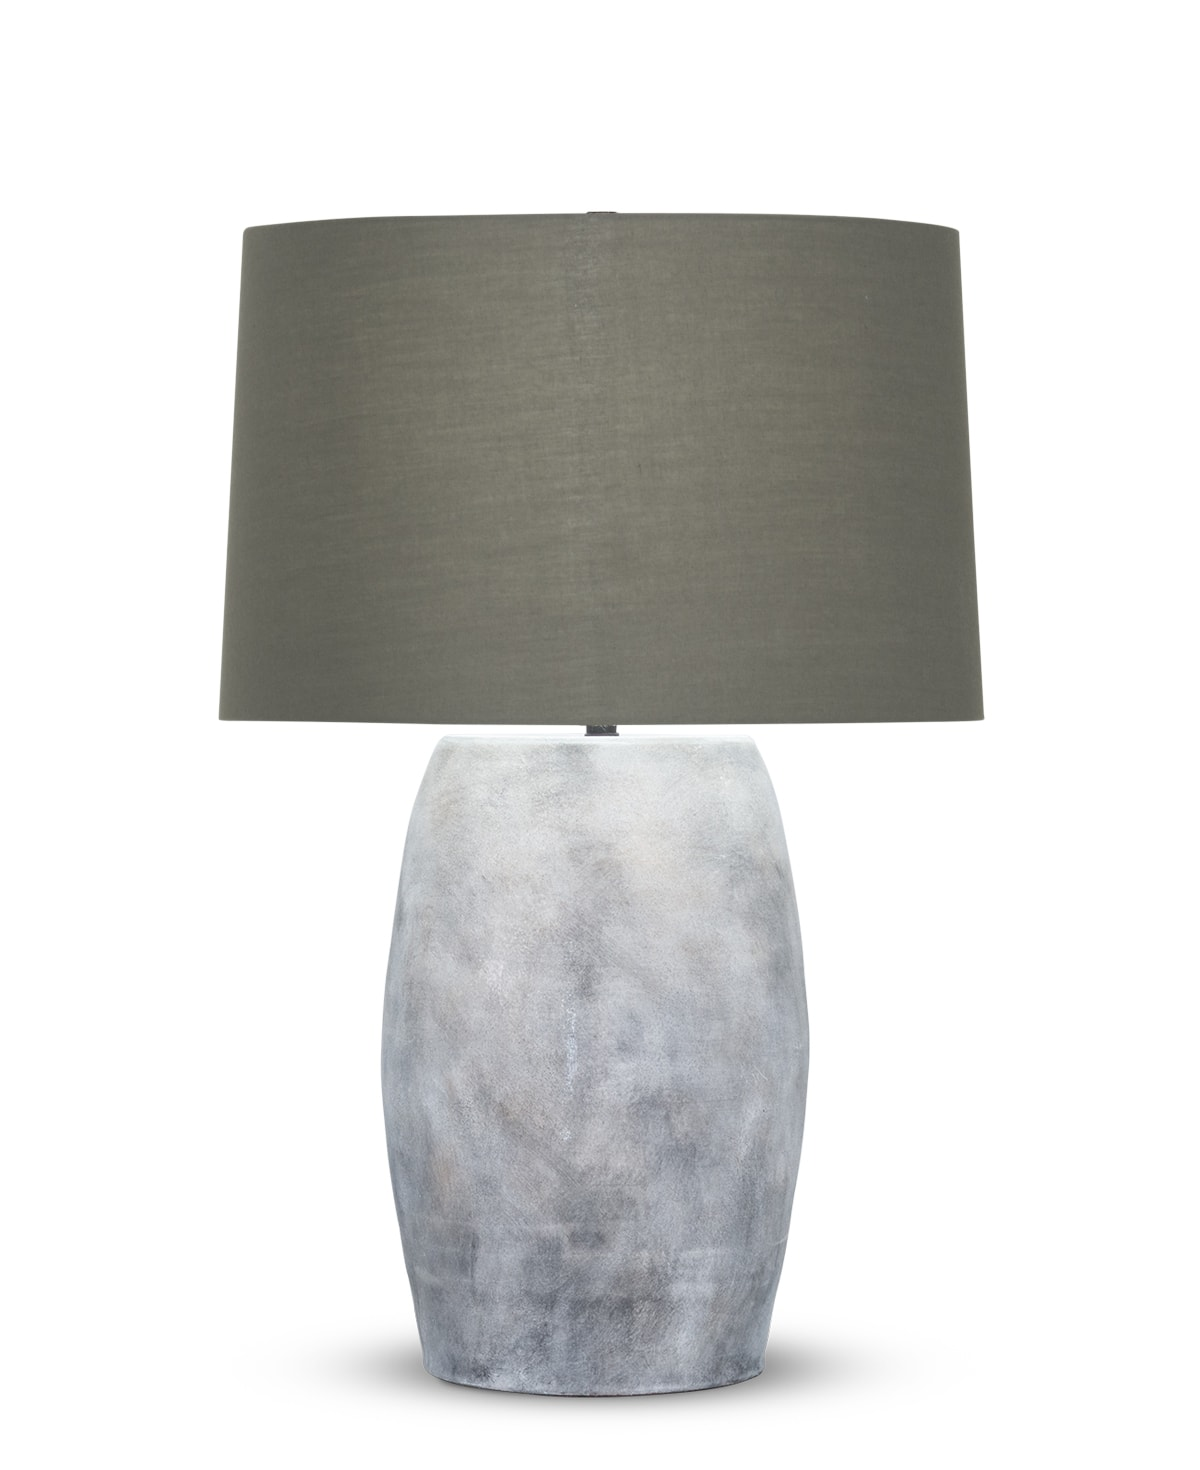 FlowDecor Gabriel Table Lamp in ceramic with grey finish and taupe cotton tapered drum shade (# 4502)